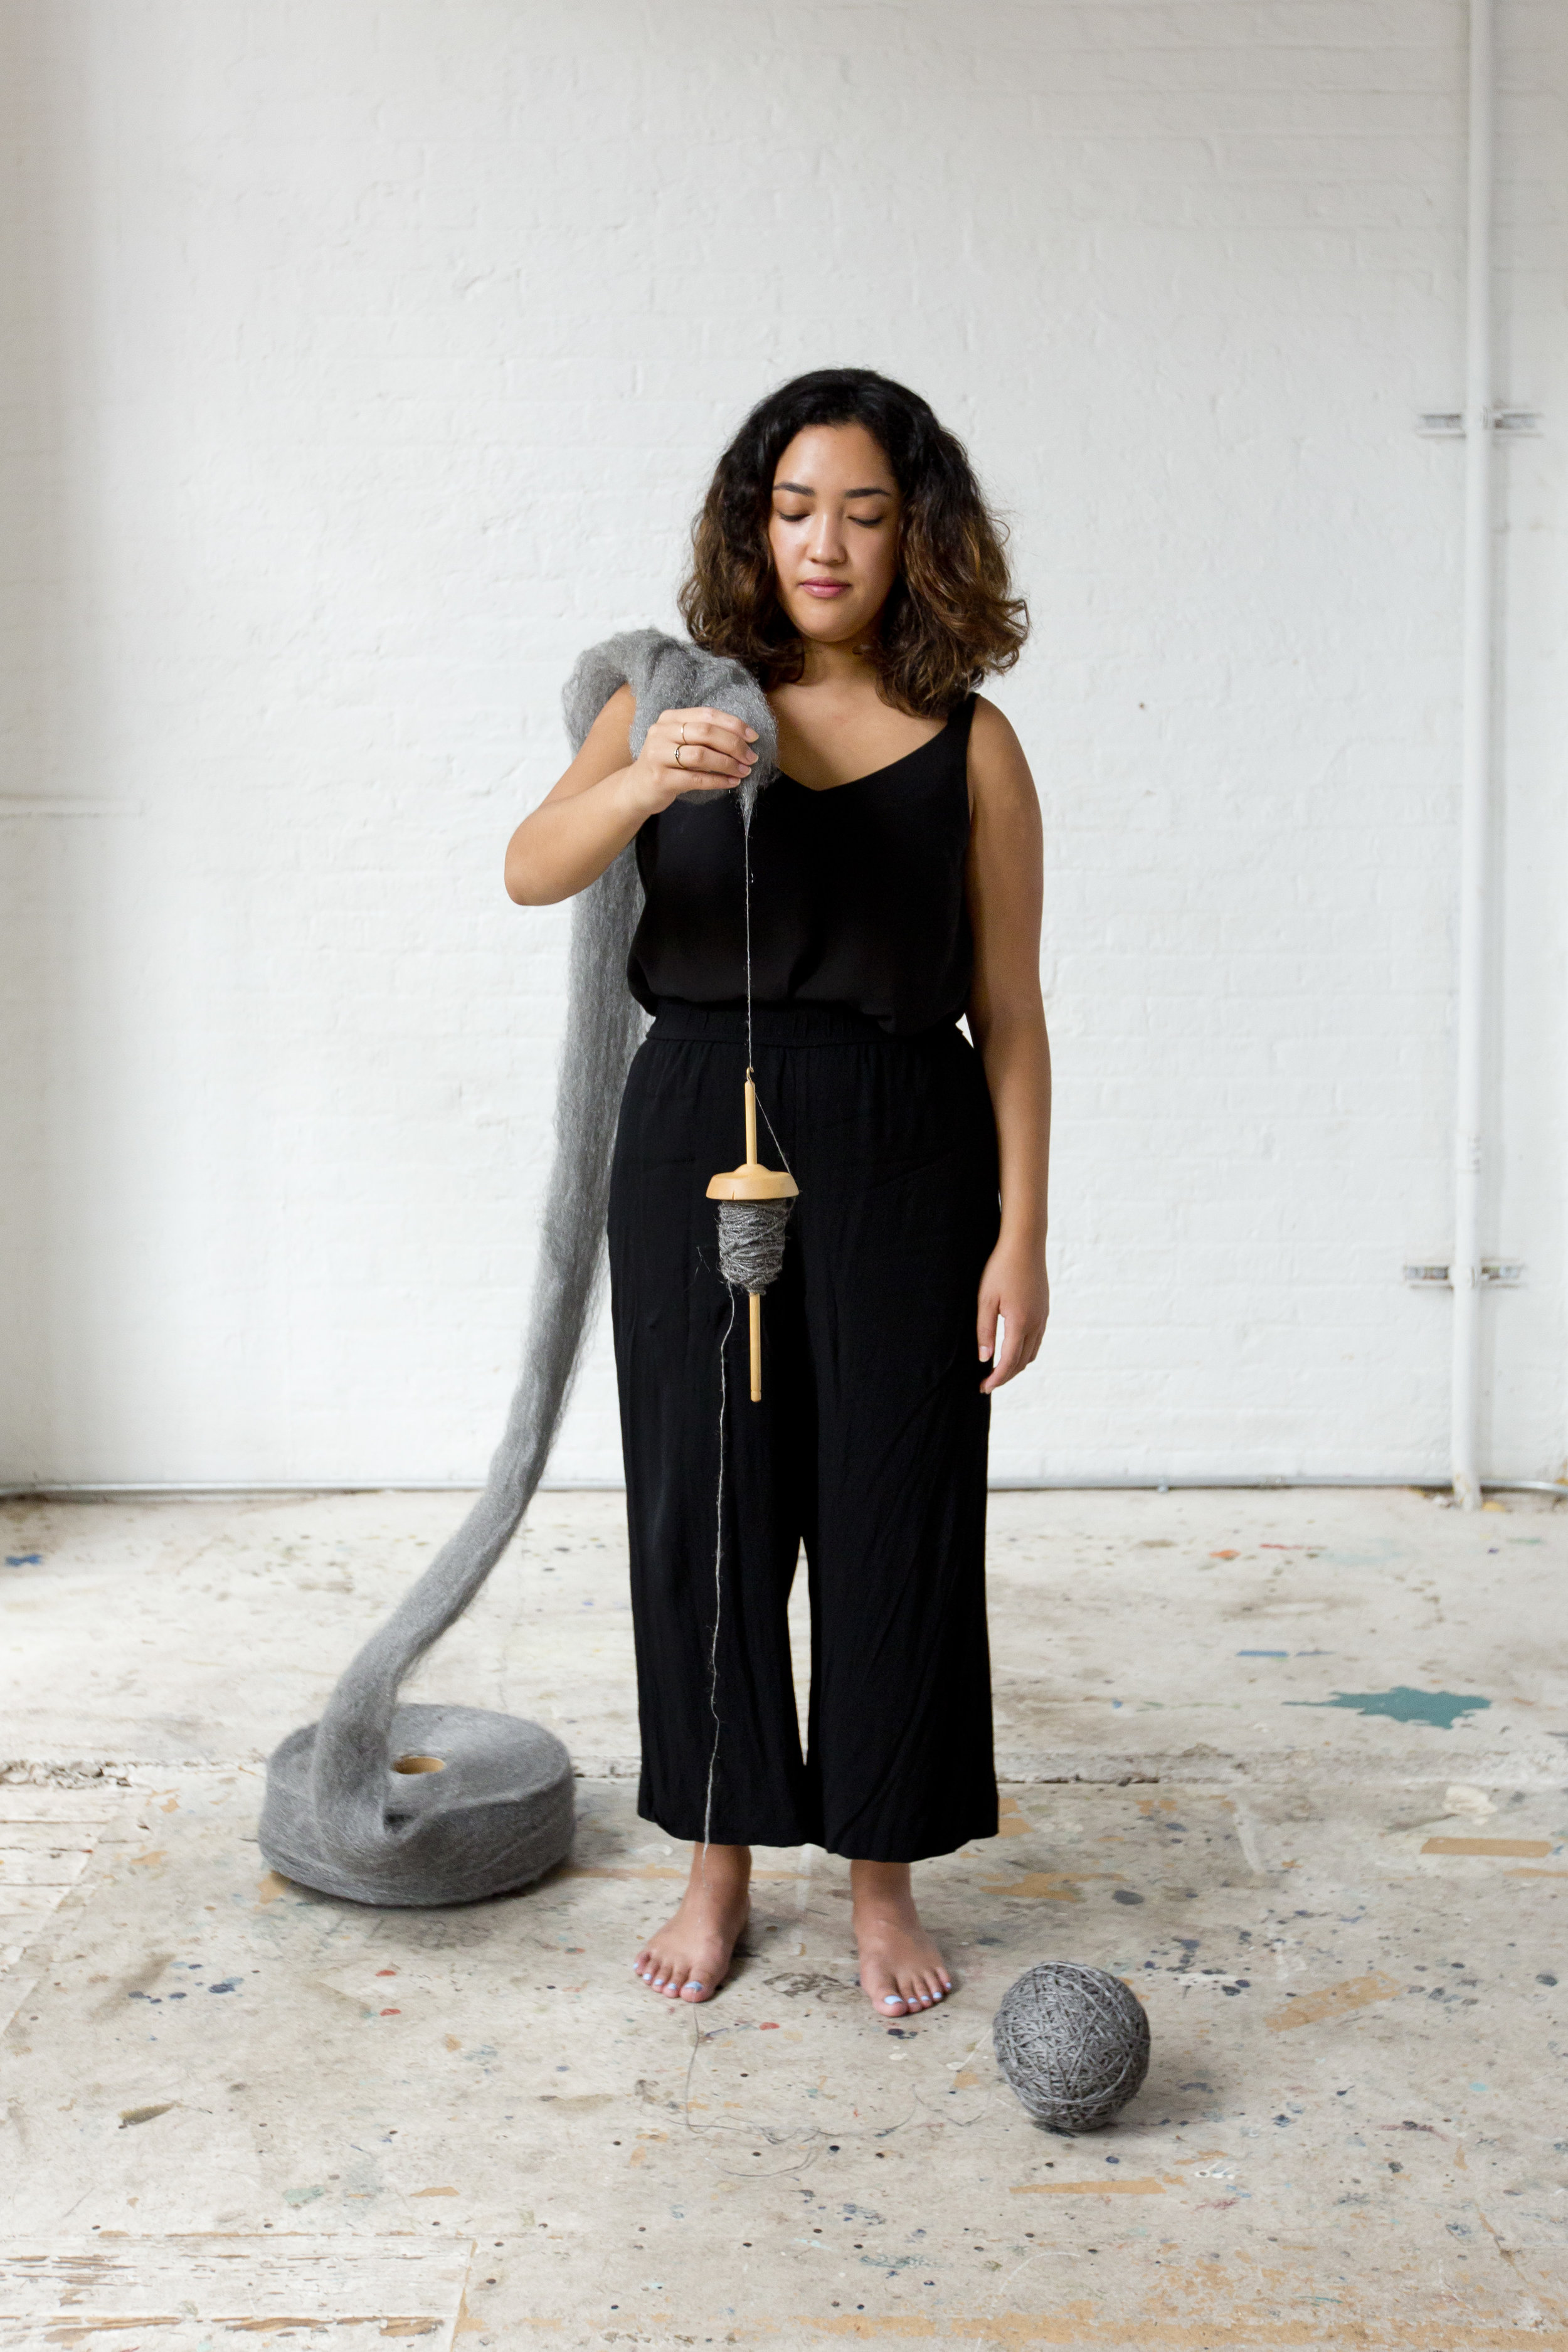 Image of Christina Crisostomo holding a drop spindle to showcase the process of spinning steel wool into yarn.